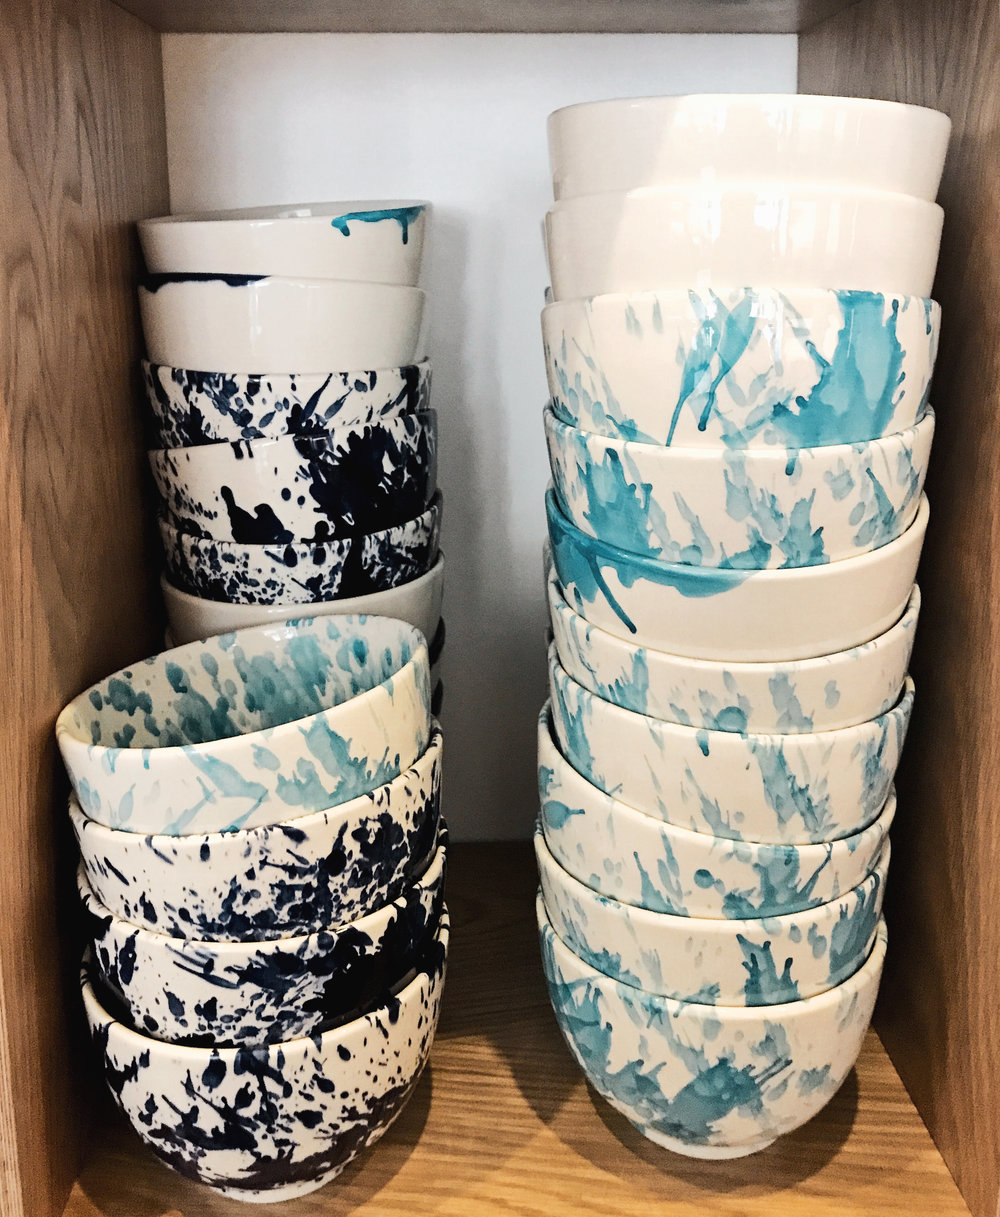 Ceramics at The Mill